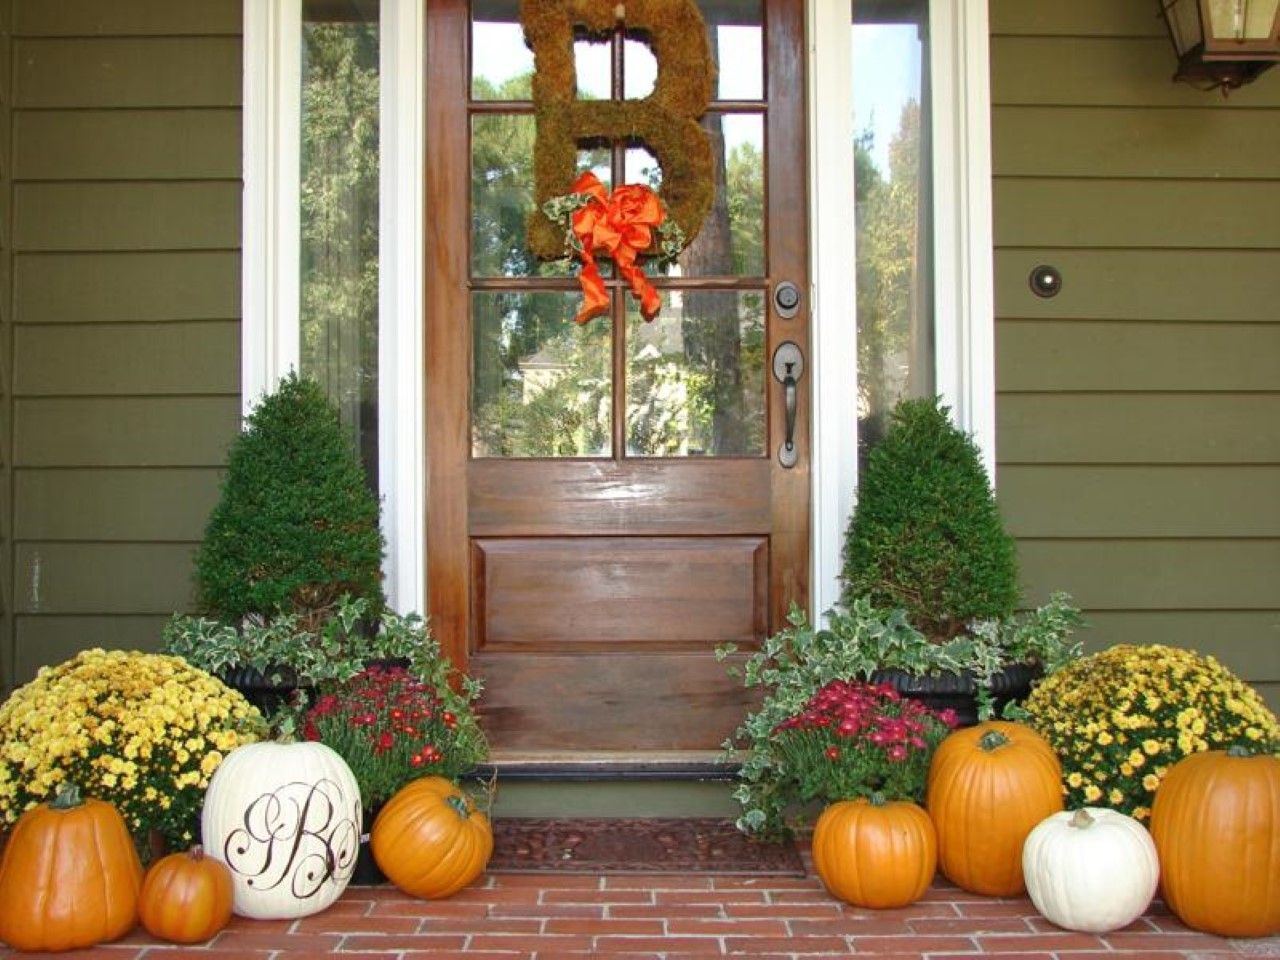 Awesome B Letter With Ribbon On Door And Snazzy Fall Front Porch Decorating Idea  Plus Colourful